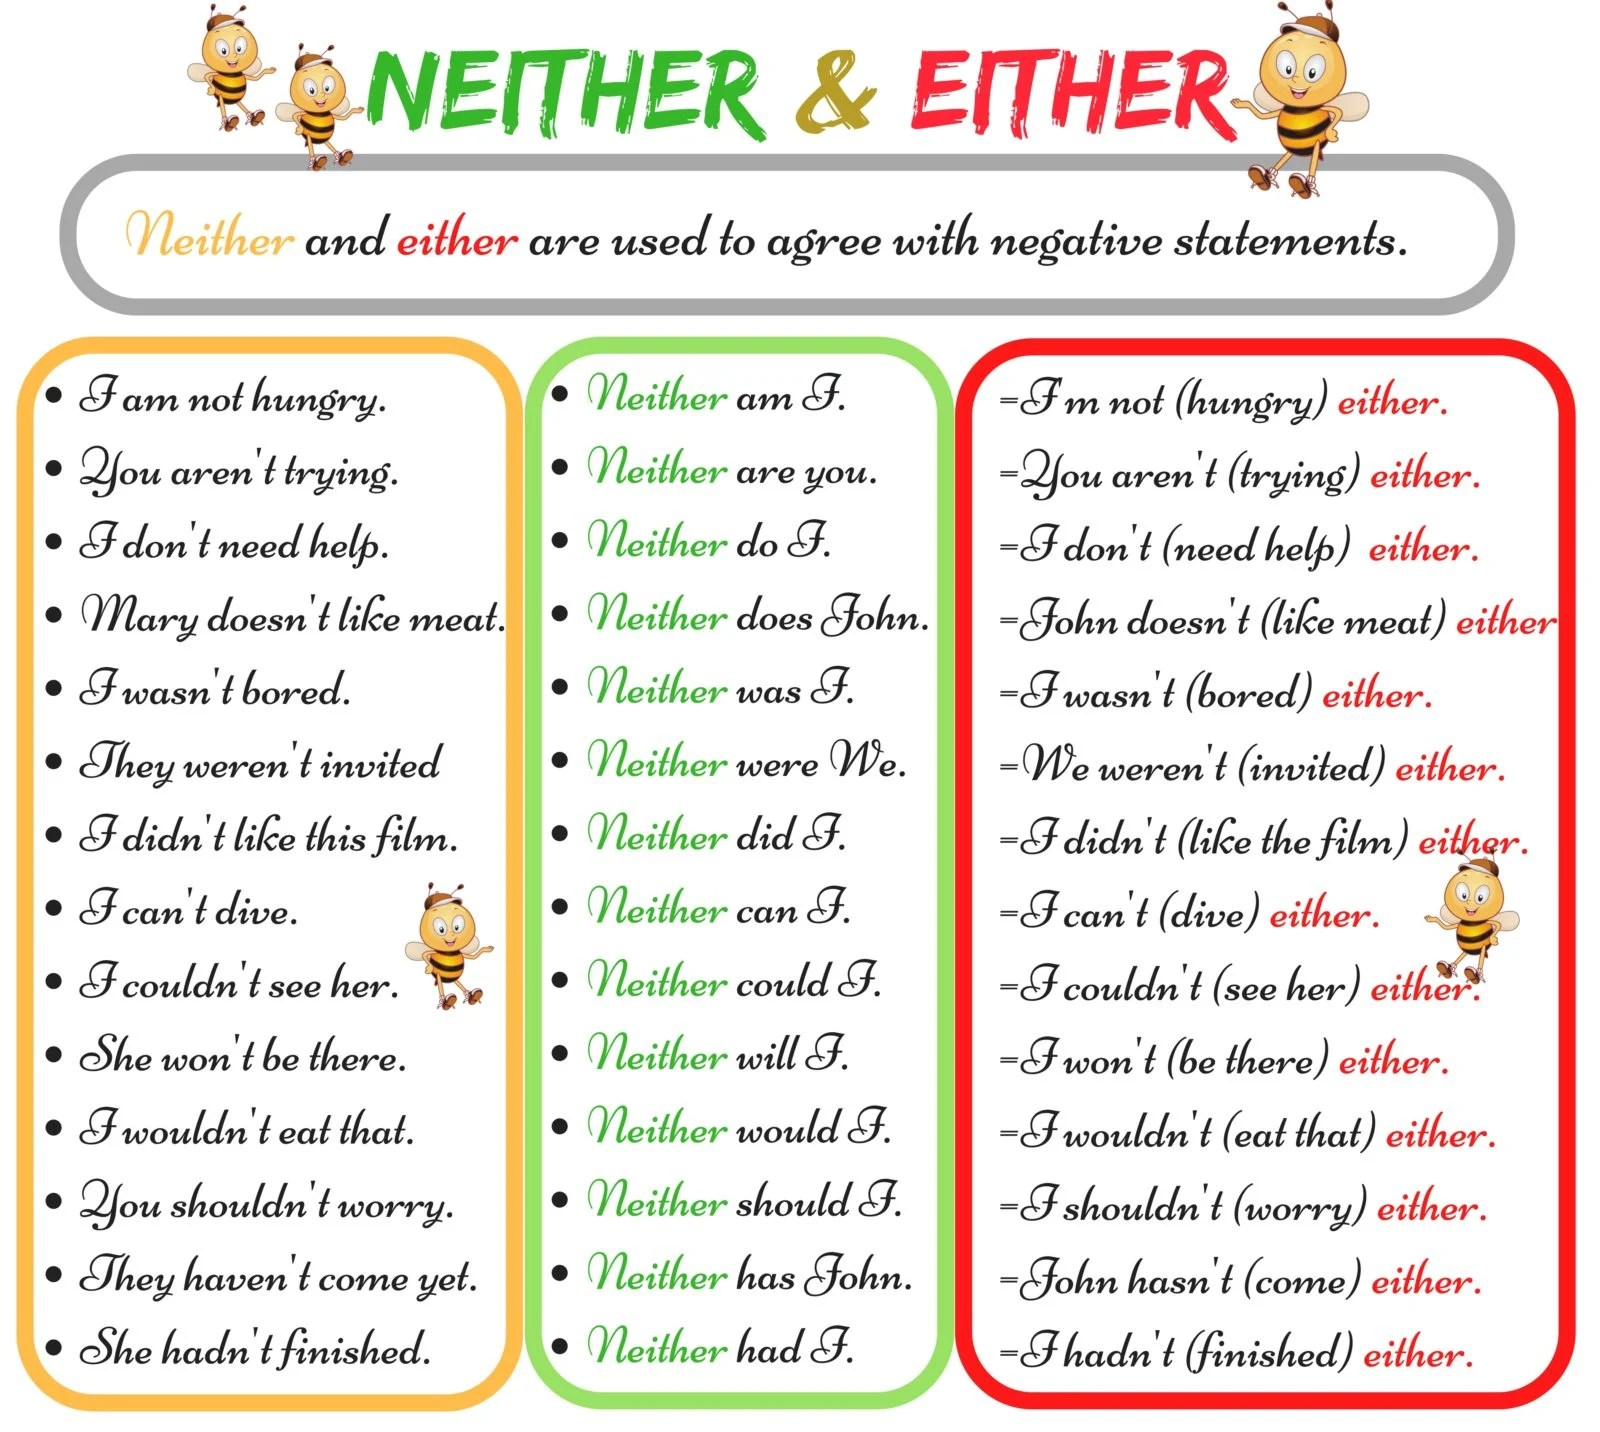 Either Vs Neither When To Use Neither Vs Either With